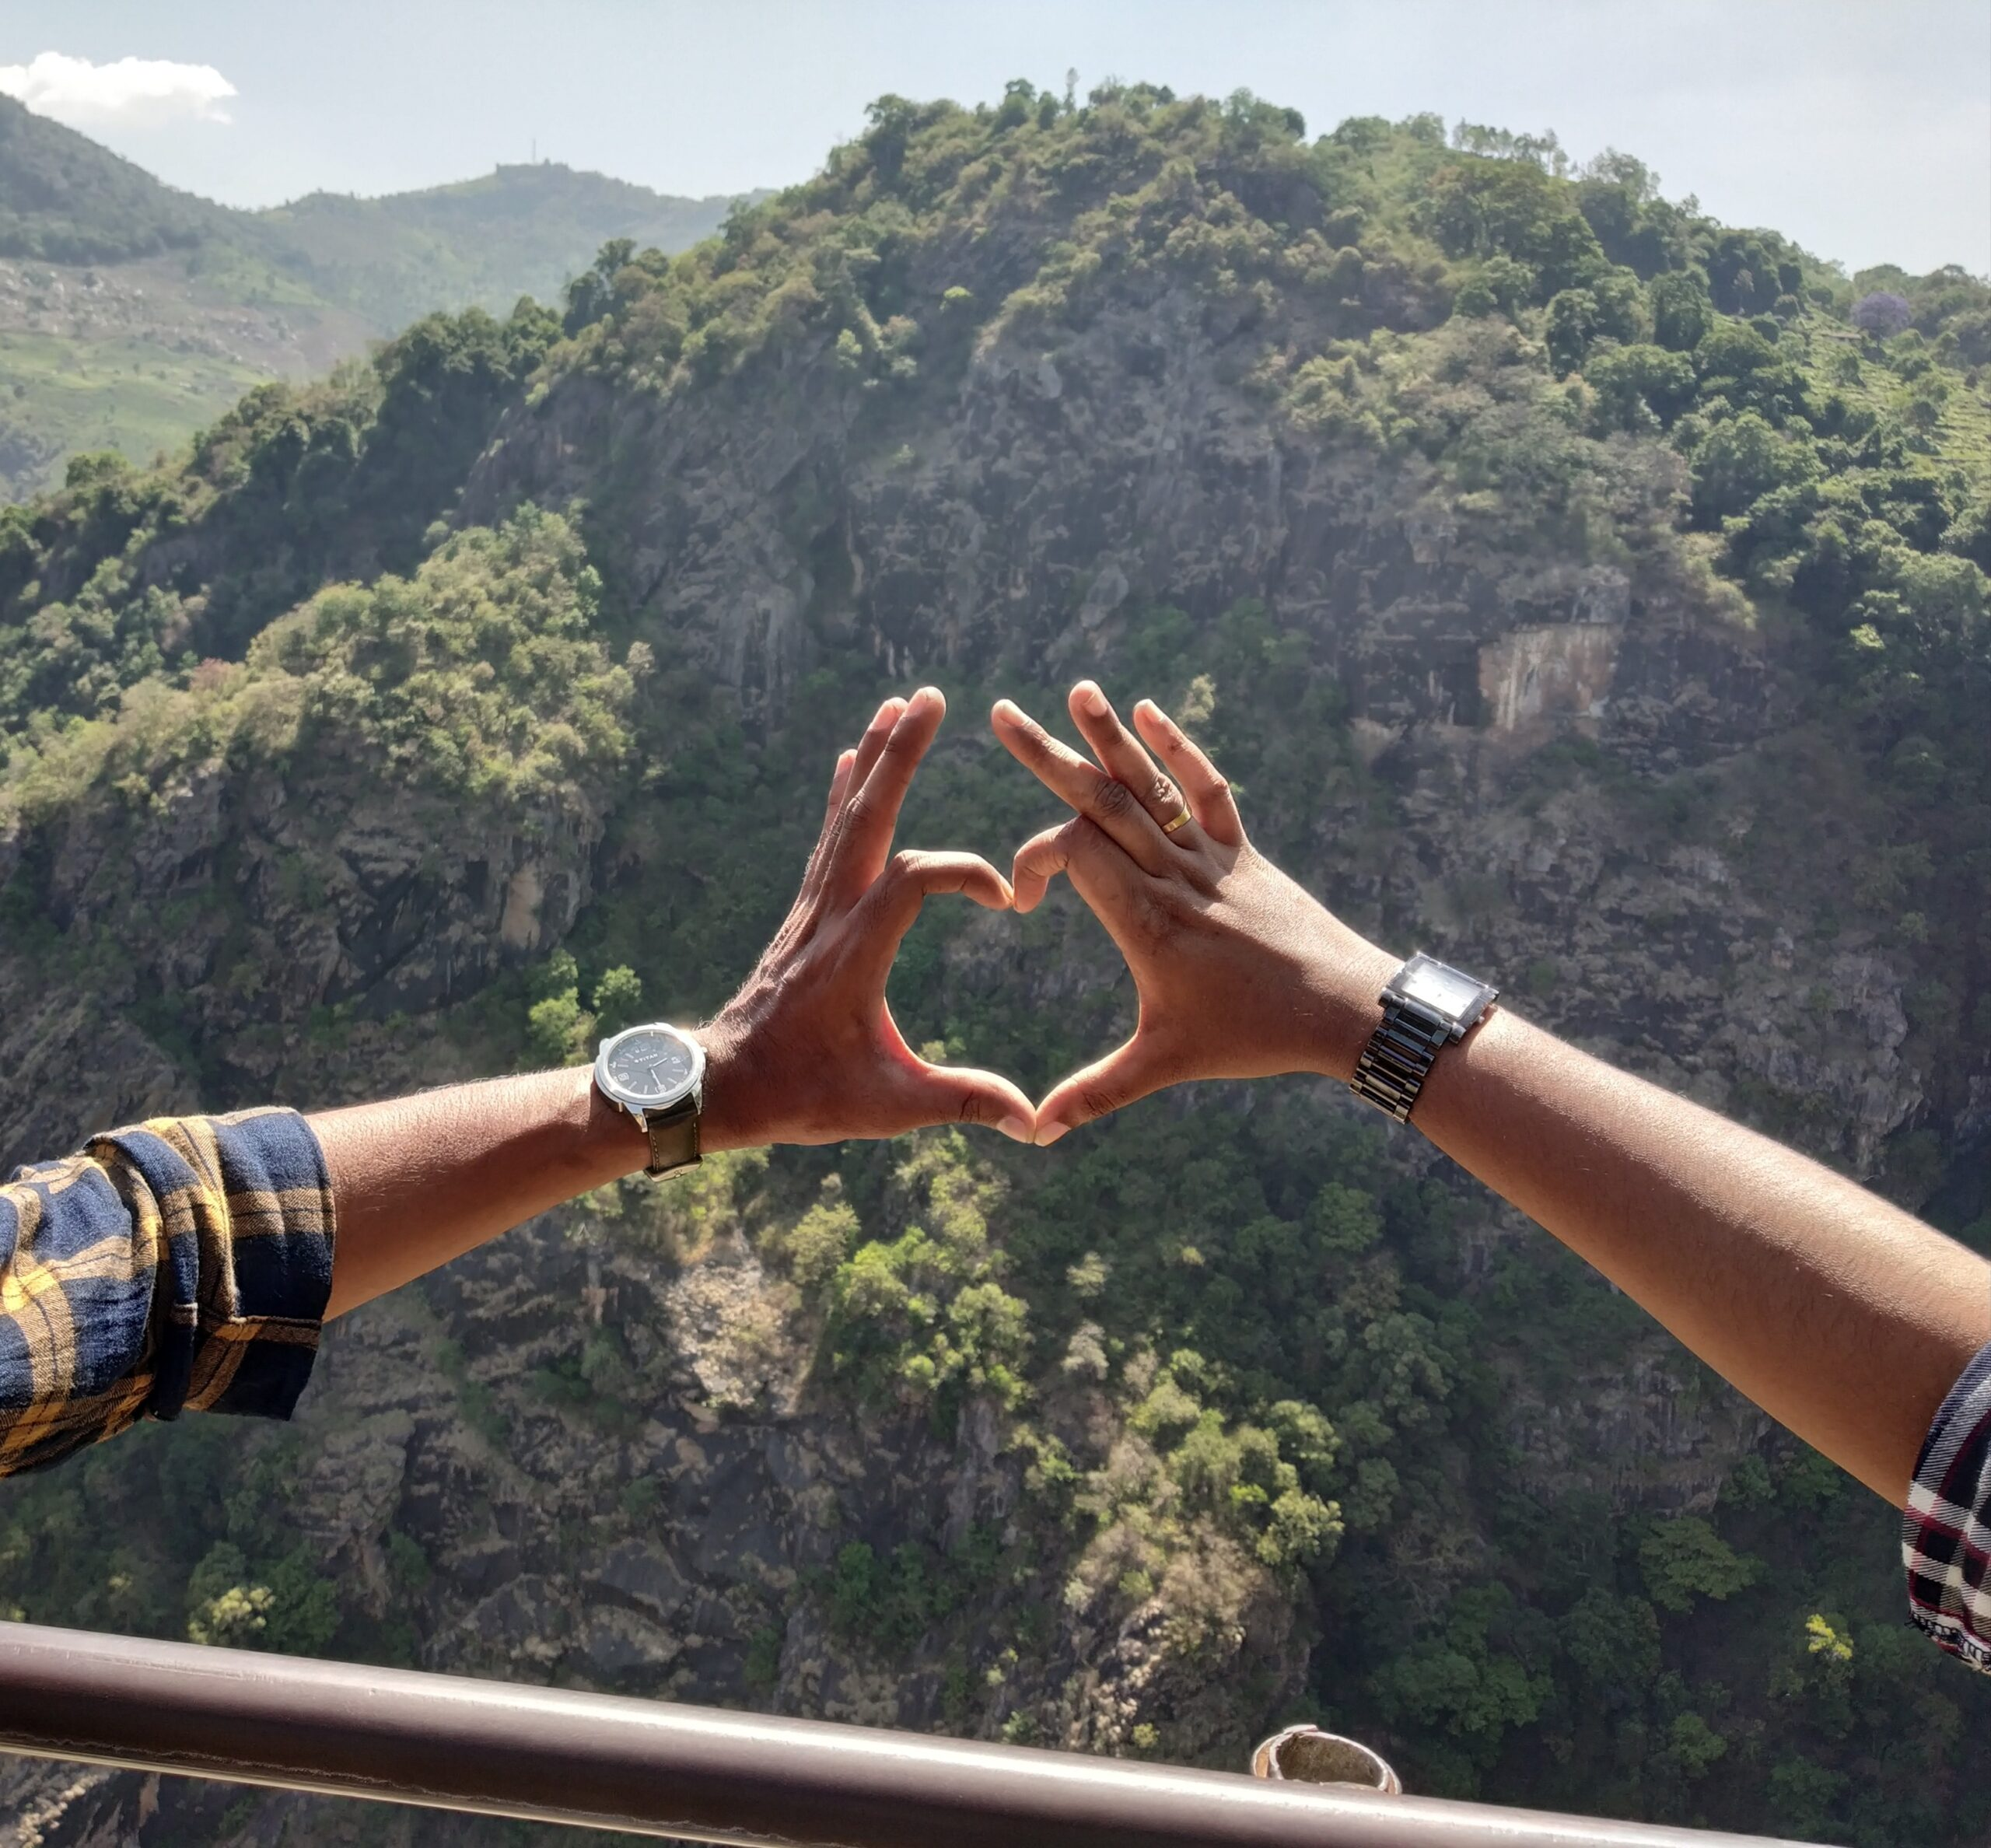 two person forming heart shape by hands